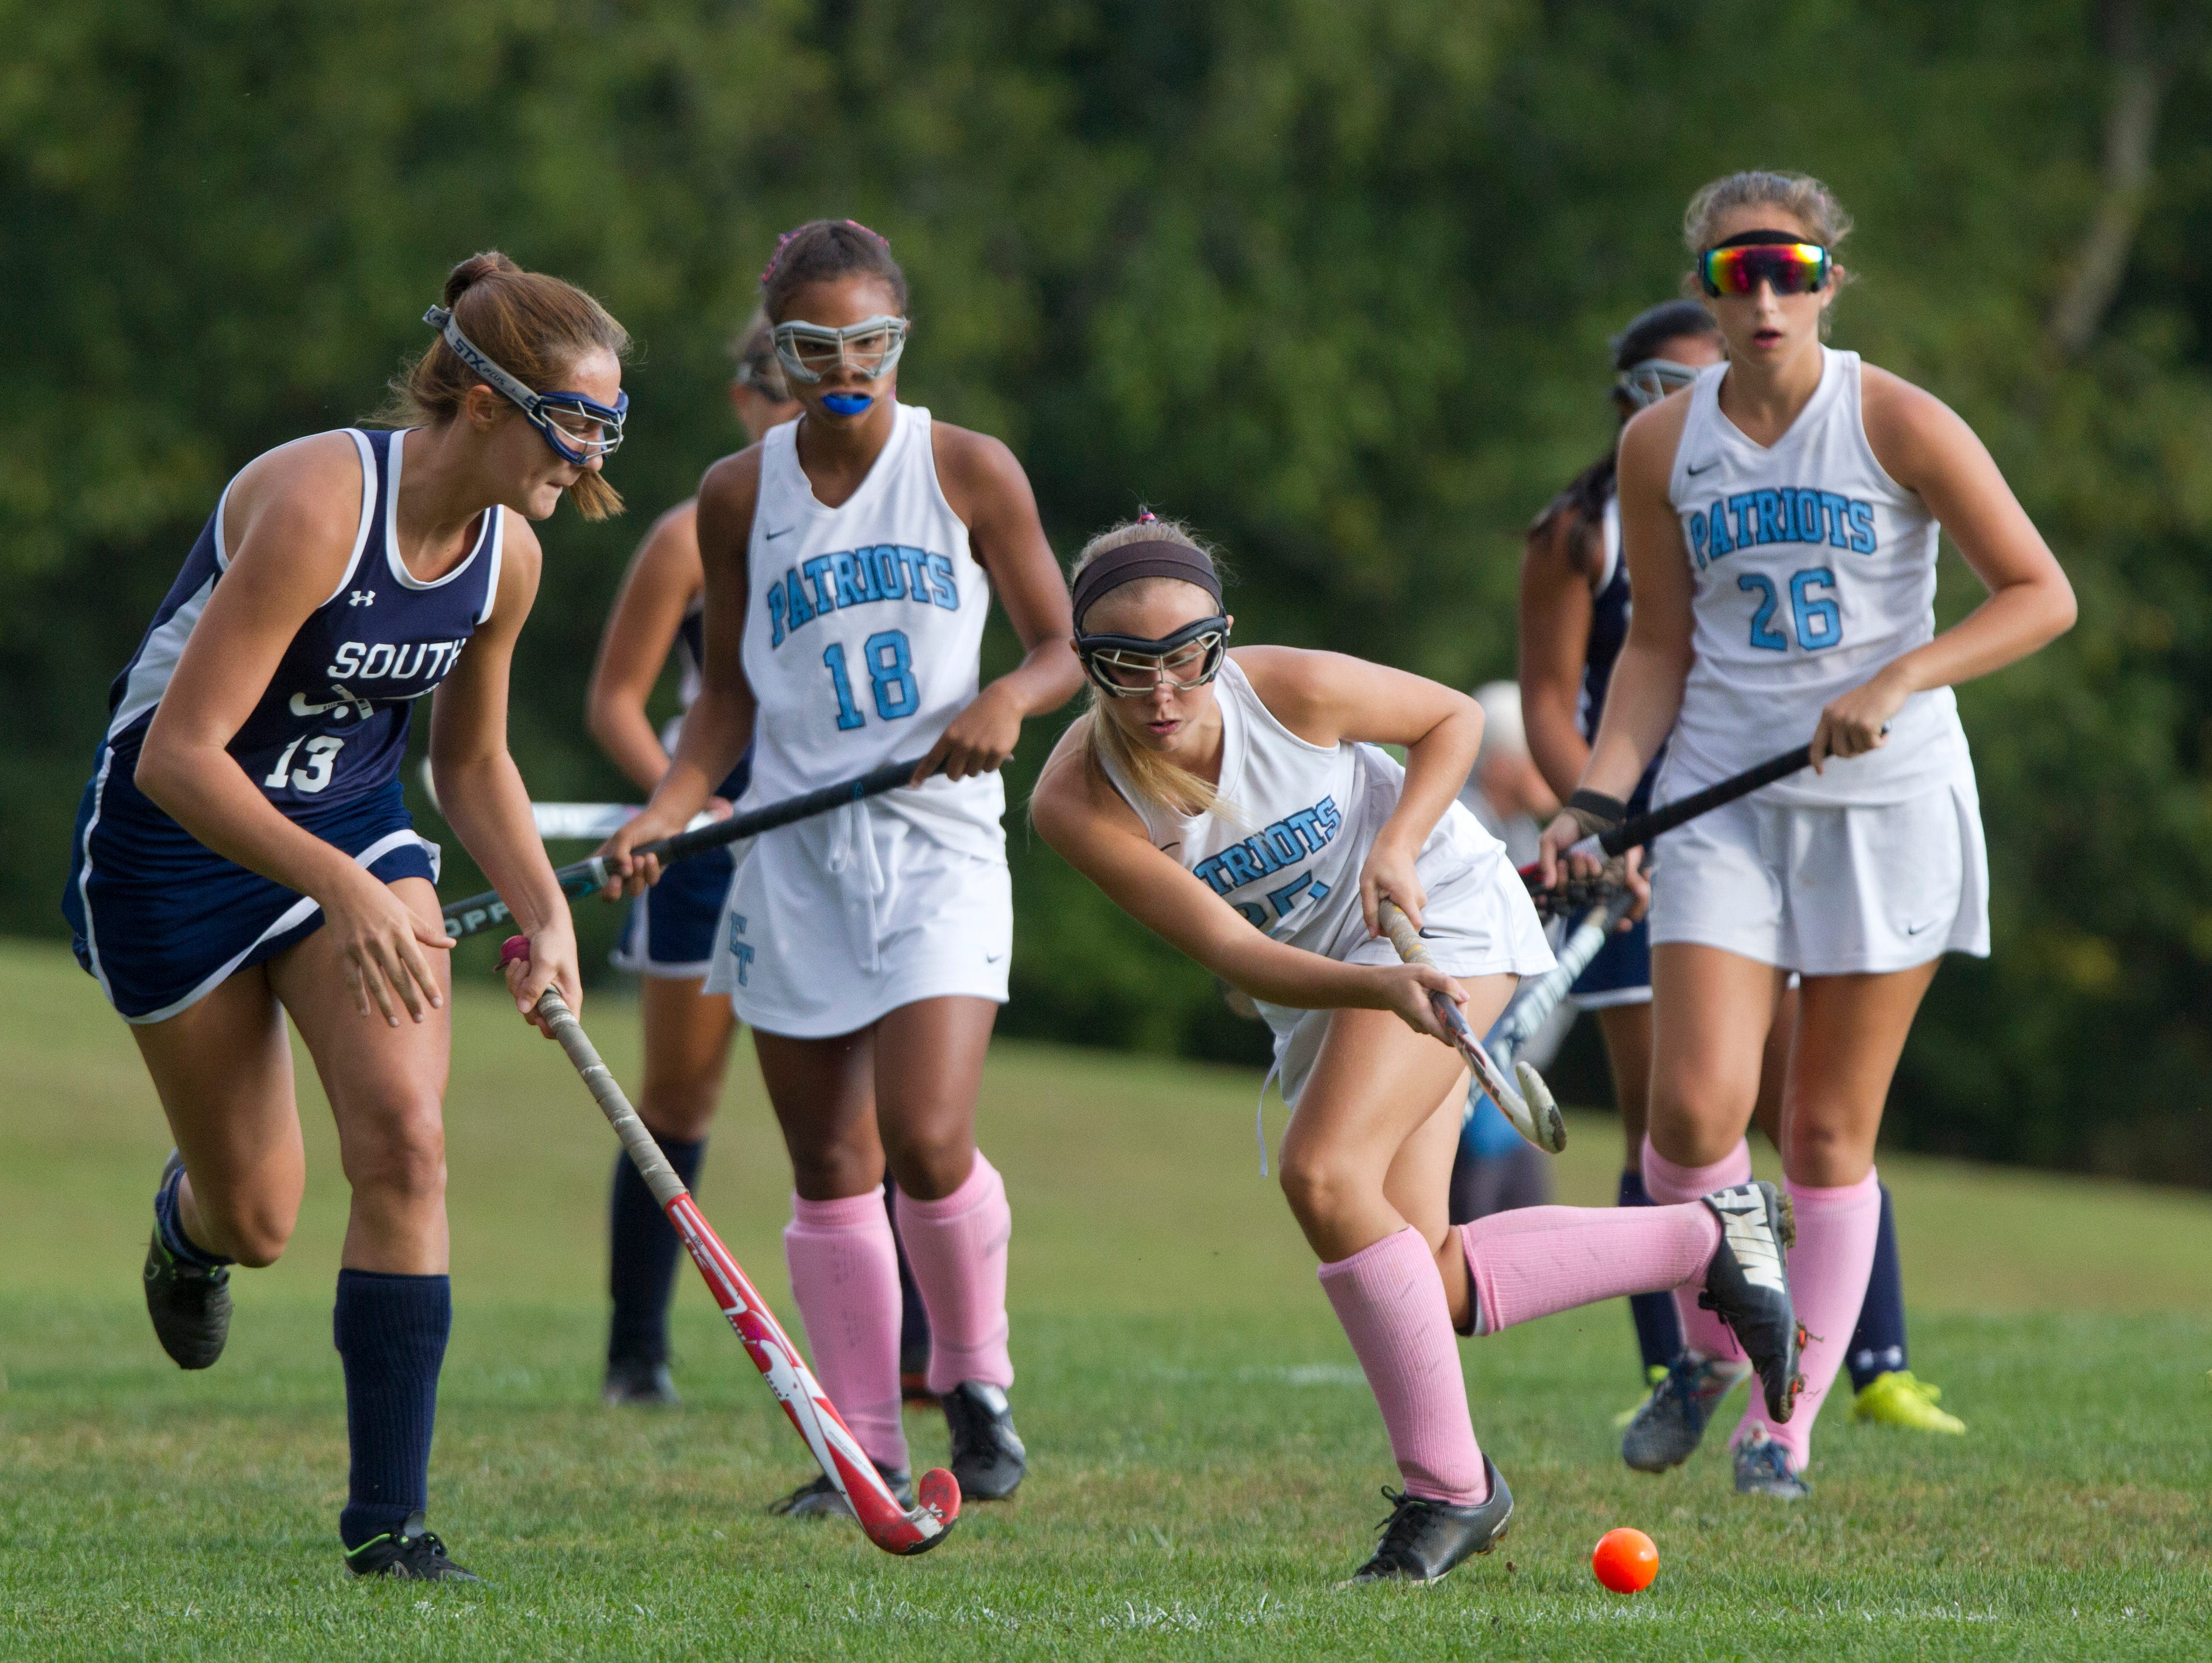 Freehold Township's Jessica Applegate advances the ball down the field during first half action as she's guarded by Middletown South's Julia Valkos. Middletown South Field Hockey vs Freehold Twp in Freehold, NJ on October 8, 2015